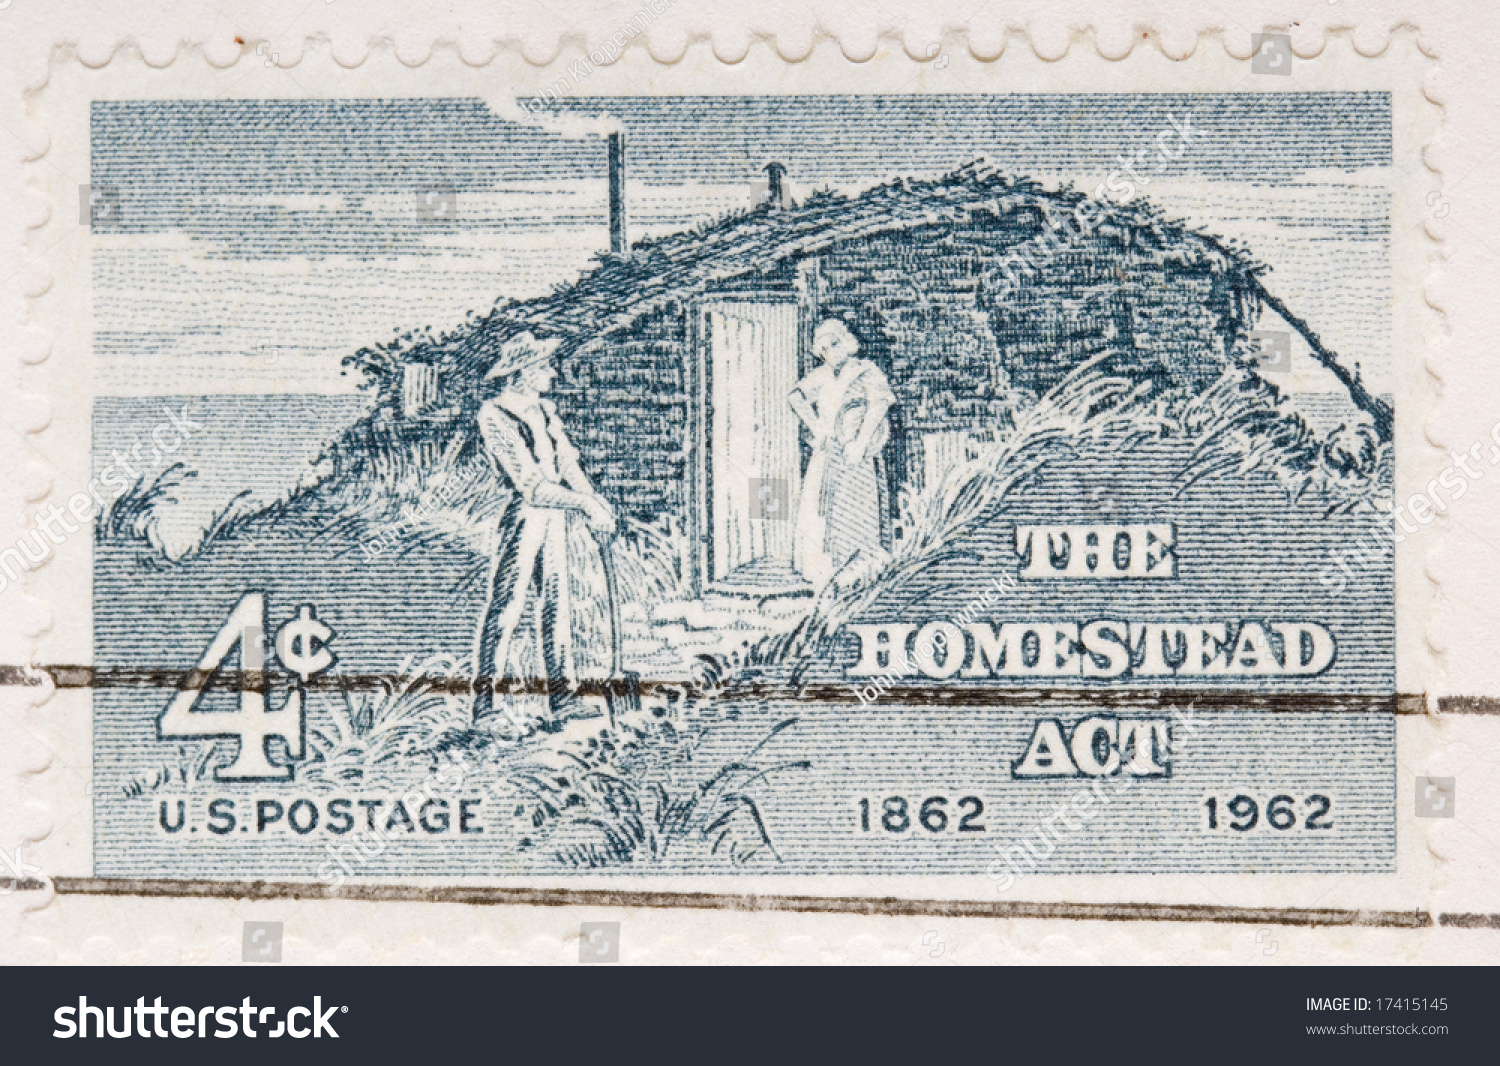 id the homestead act Printable version homestead act digital history id 3978 date:1862 annotation: law providing for free land for western settlers the homestead act of 1862 provided.